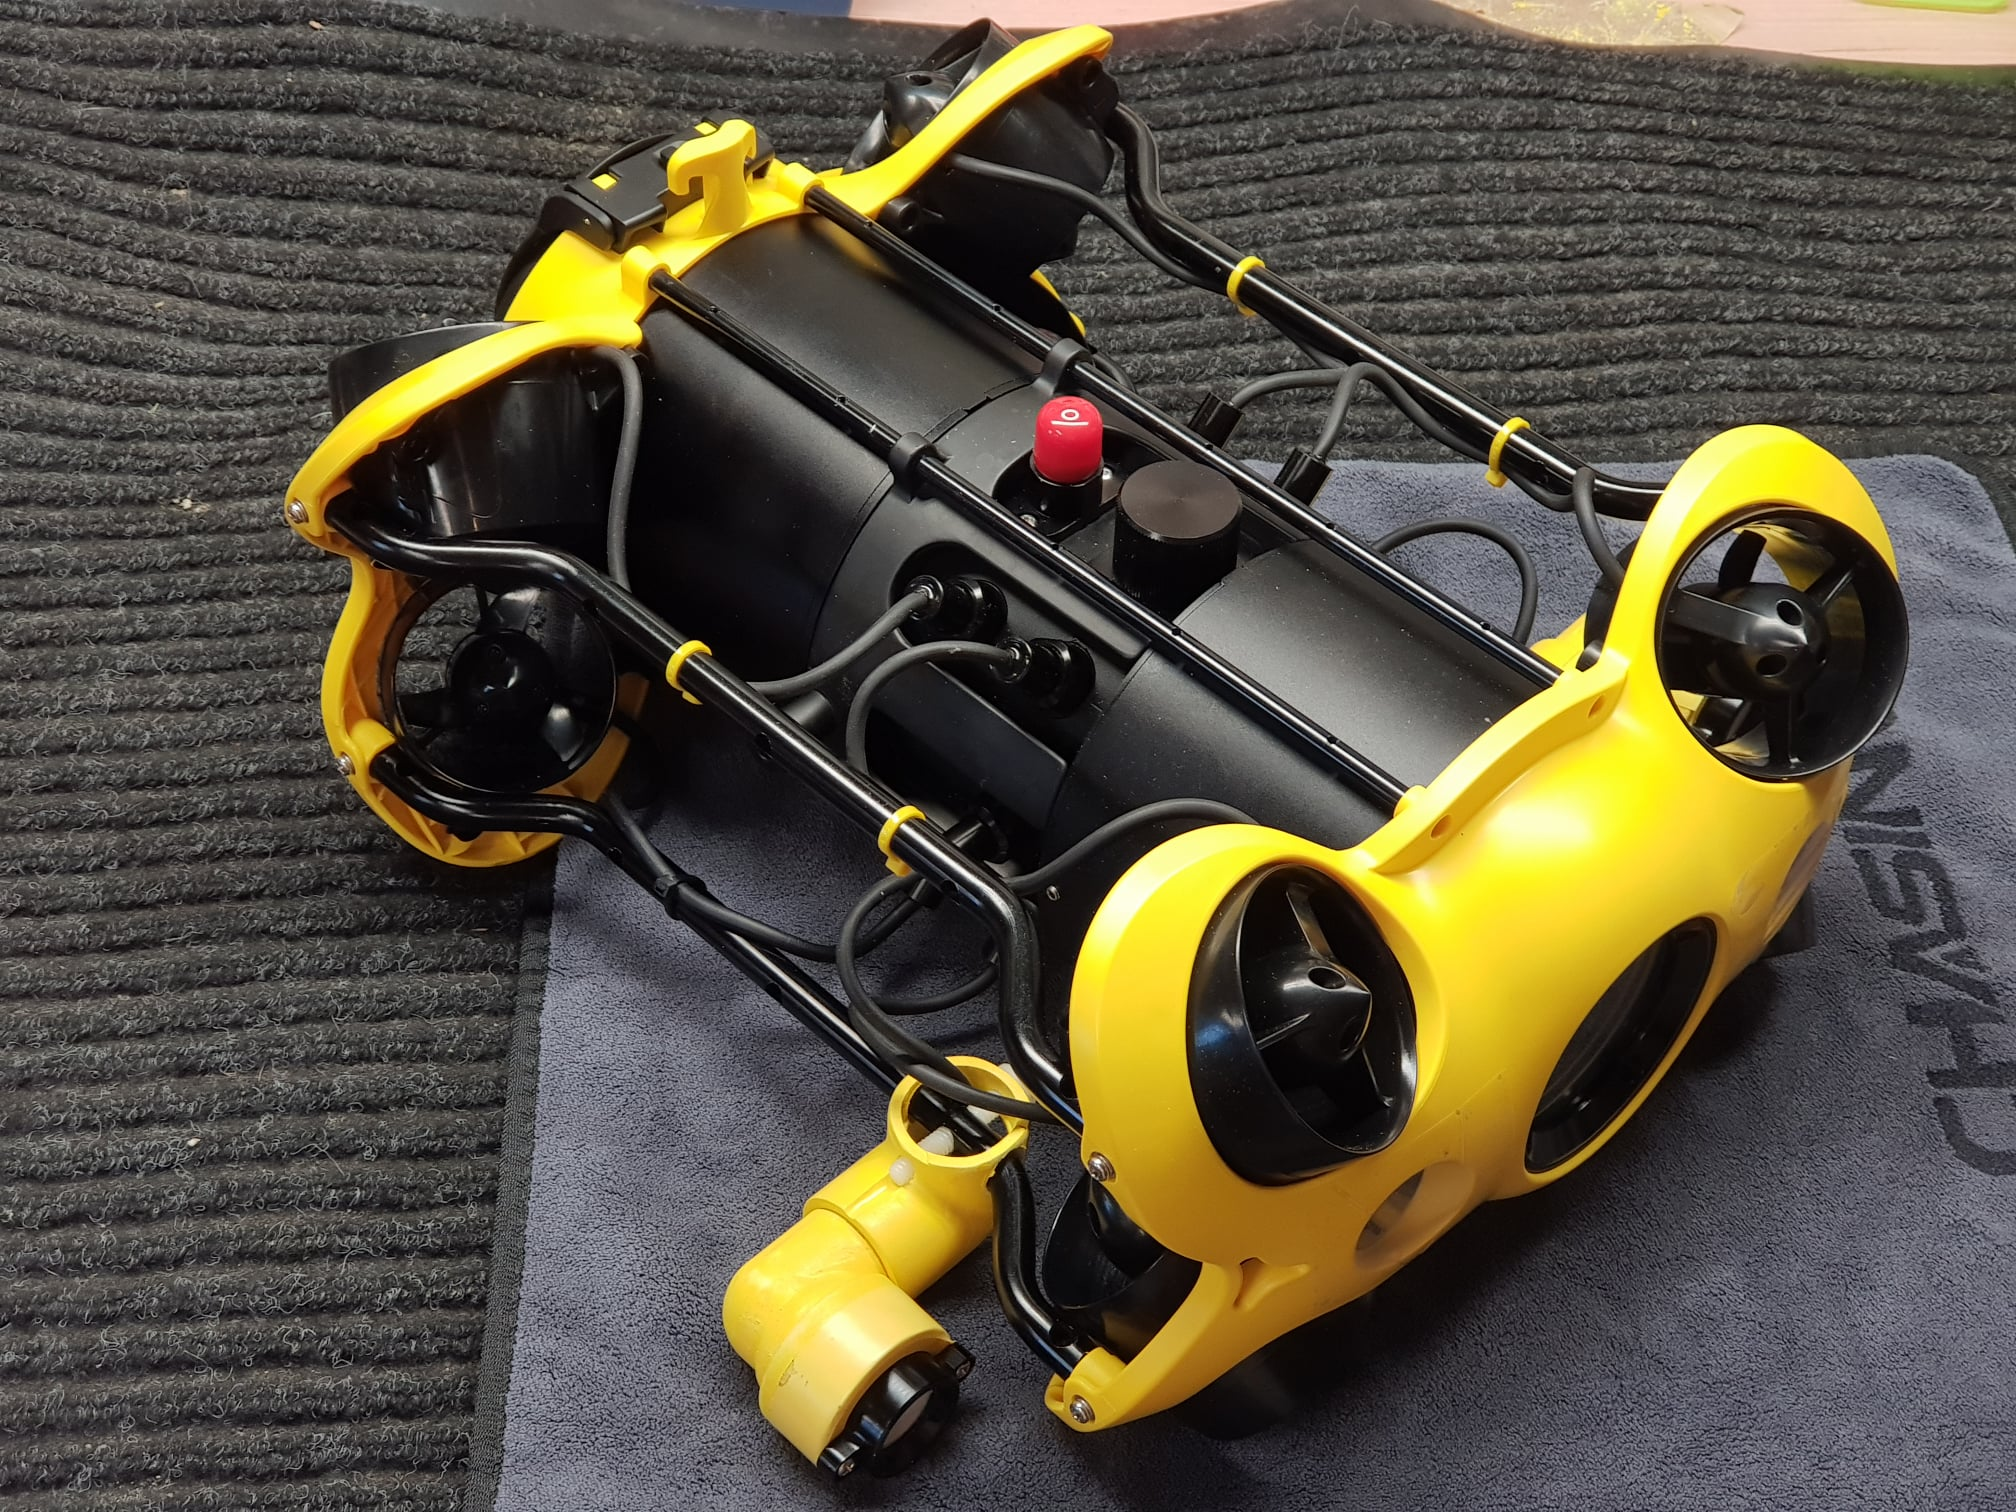 chasing-m2-light-modification-underwater-drone.jpg